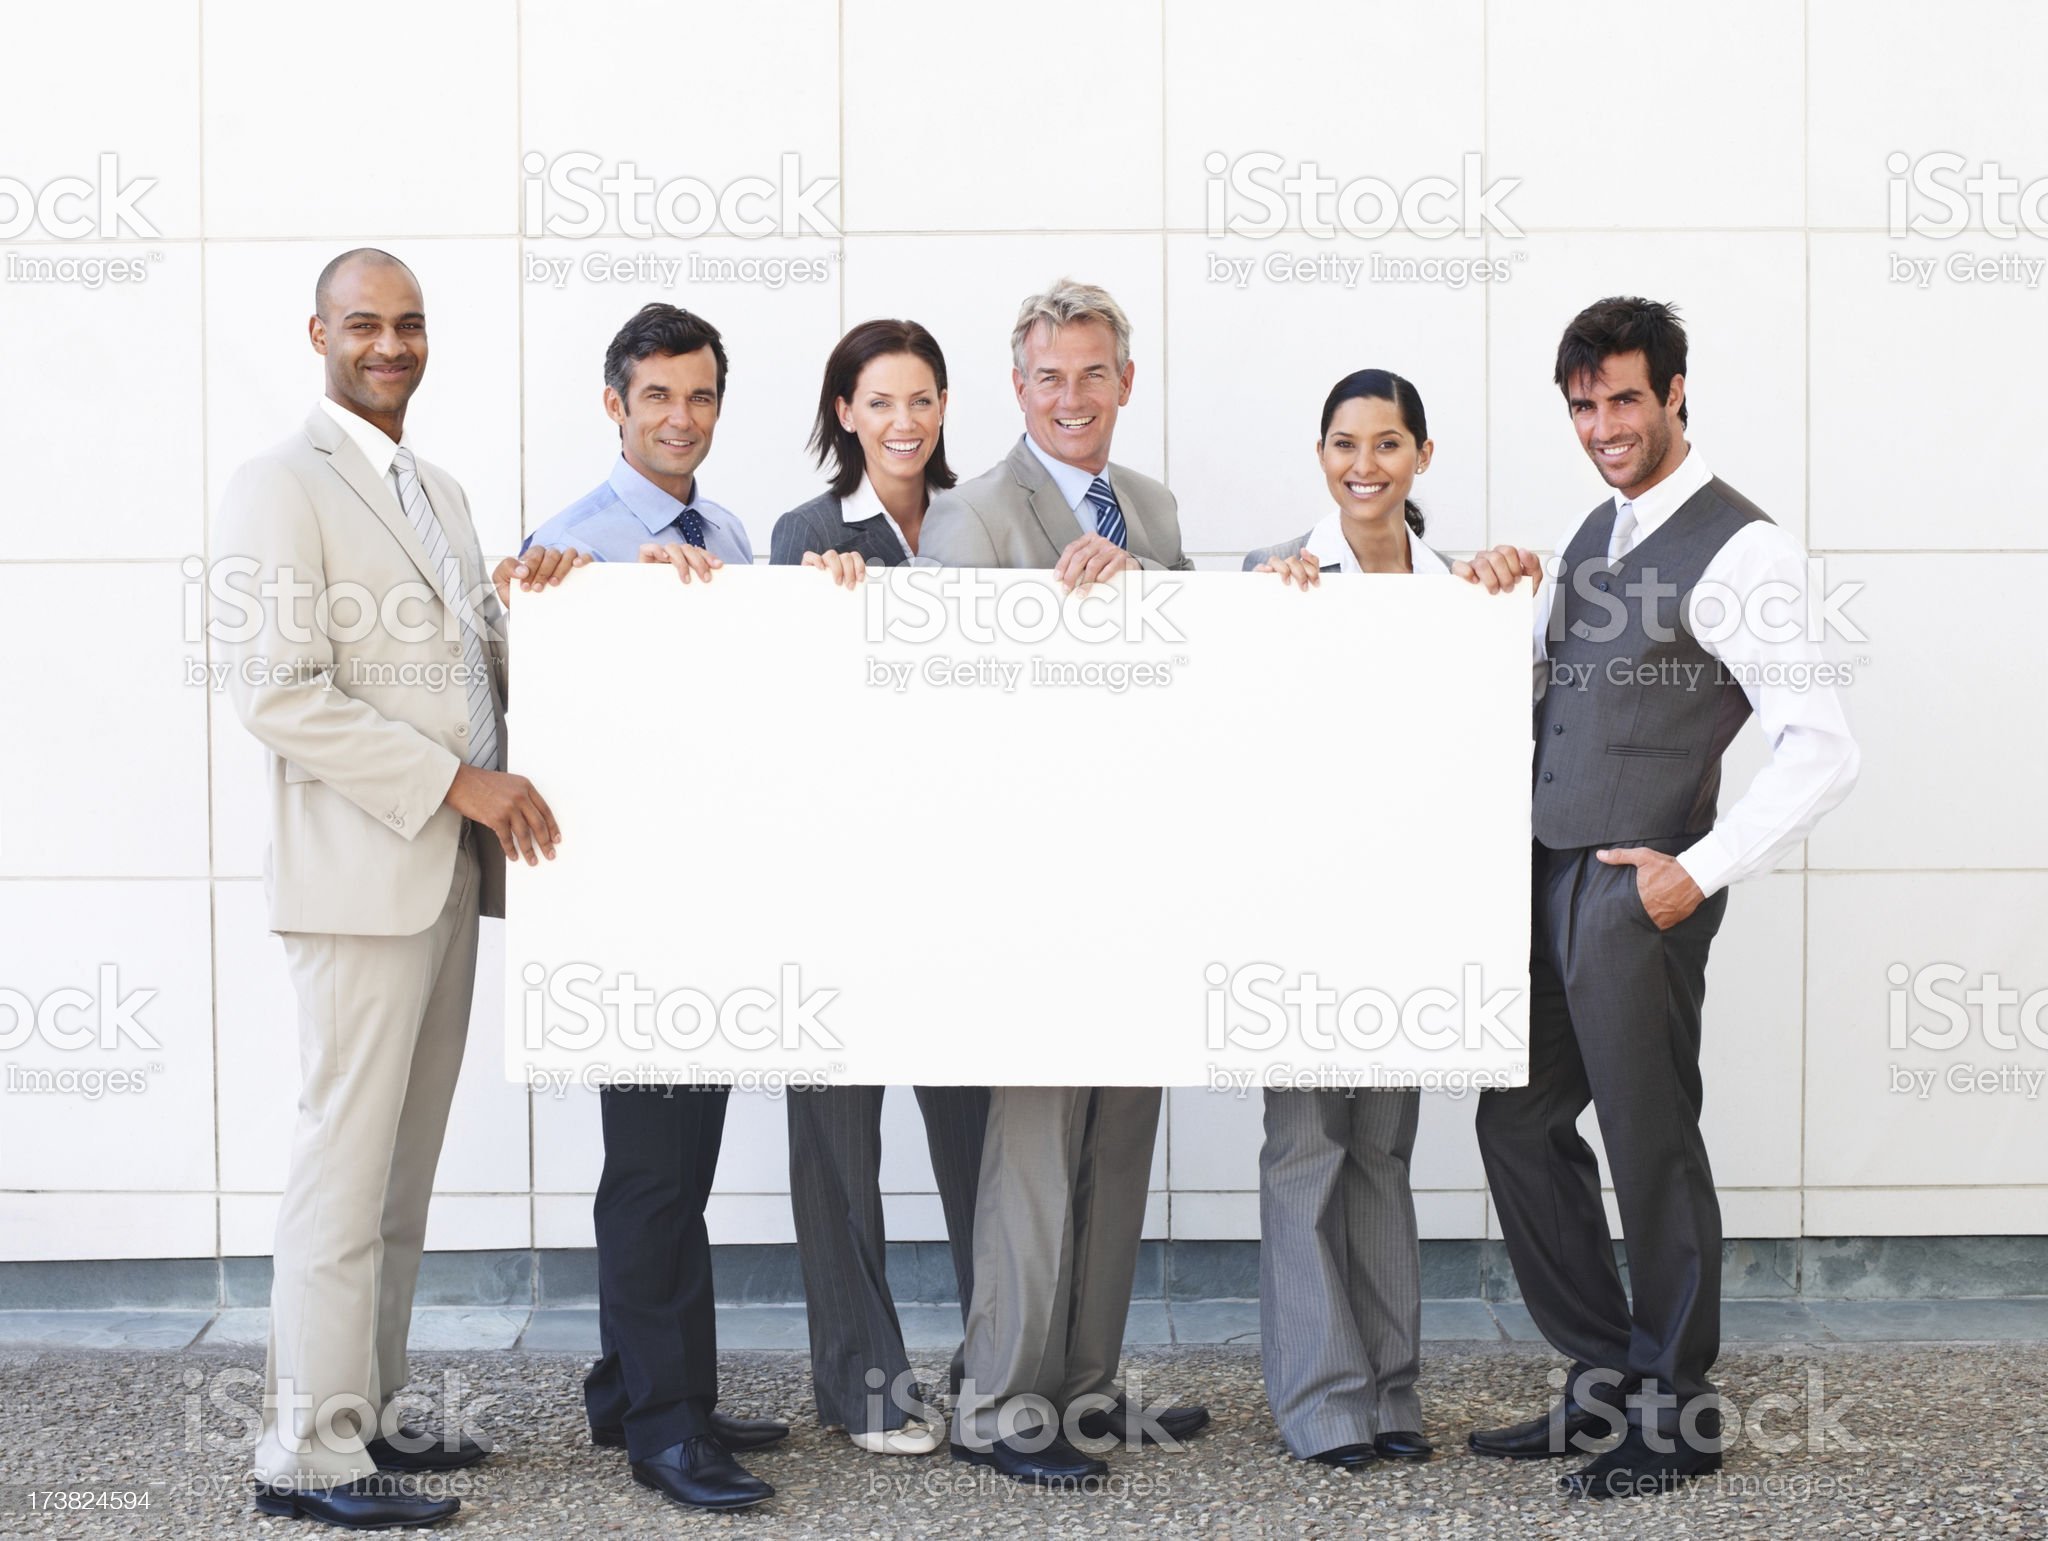 Business people standing together and holding placard royalty-free stock photo